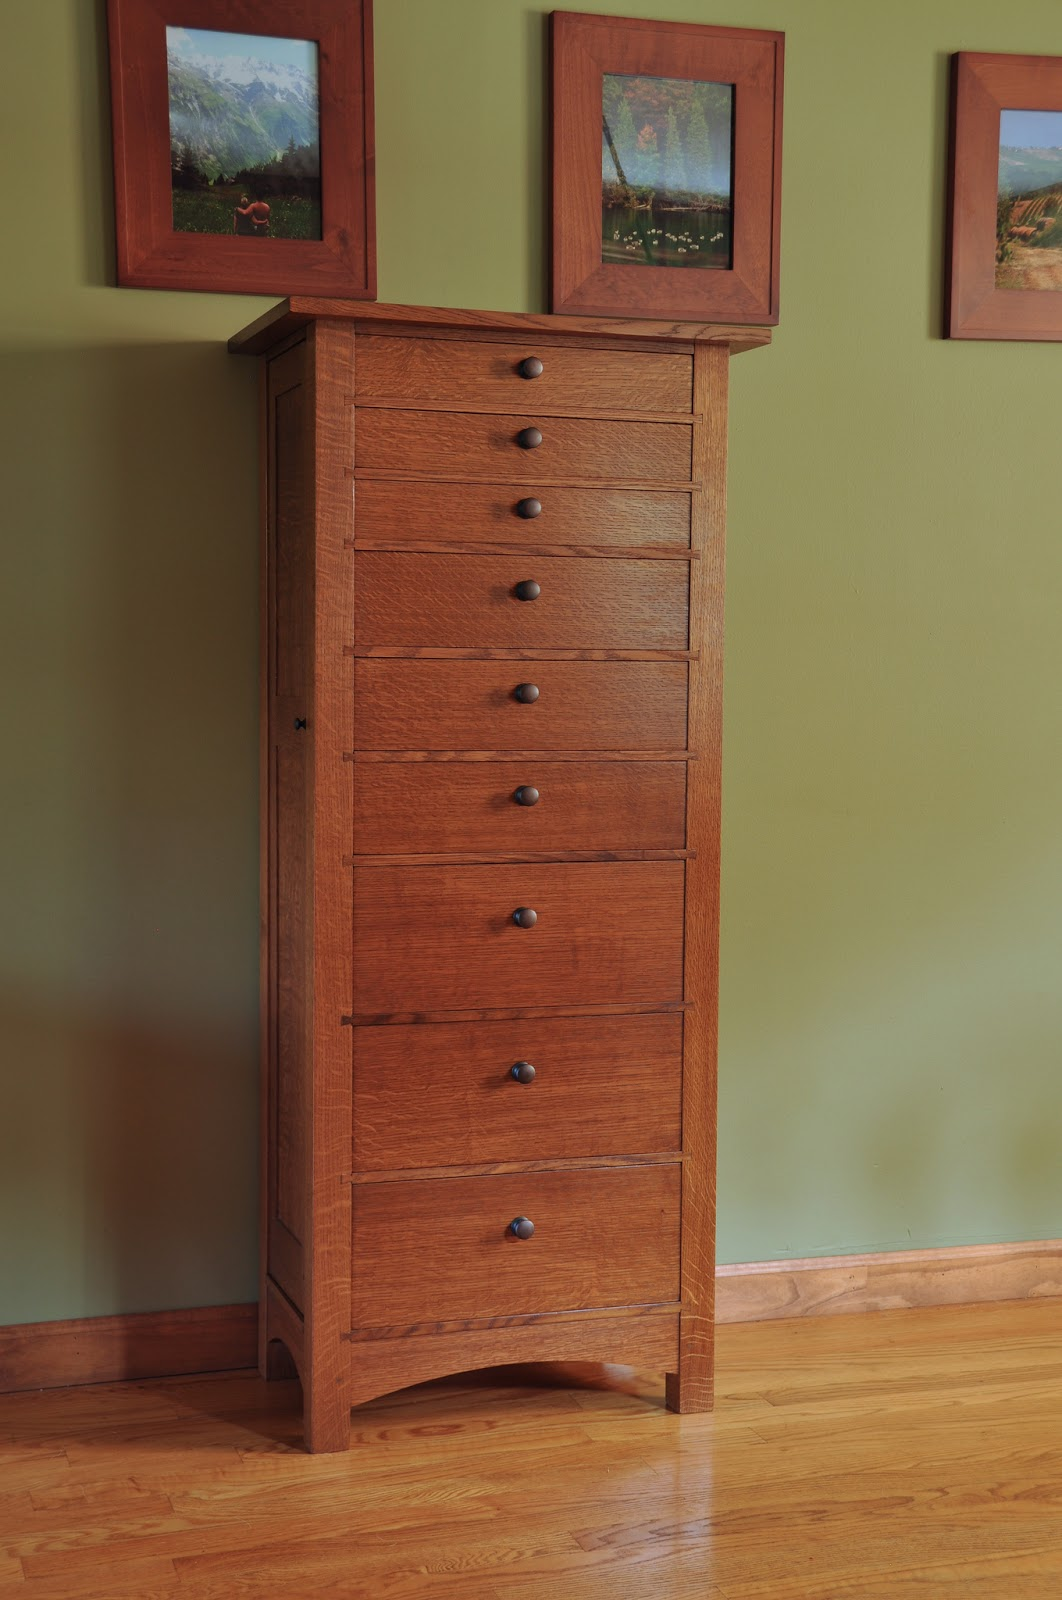 Honey Do Woodworking: Jewelry Armoire / Lingerie Chest ...